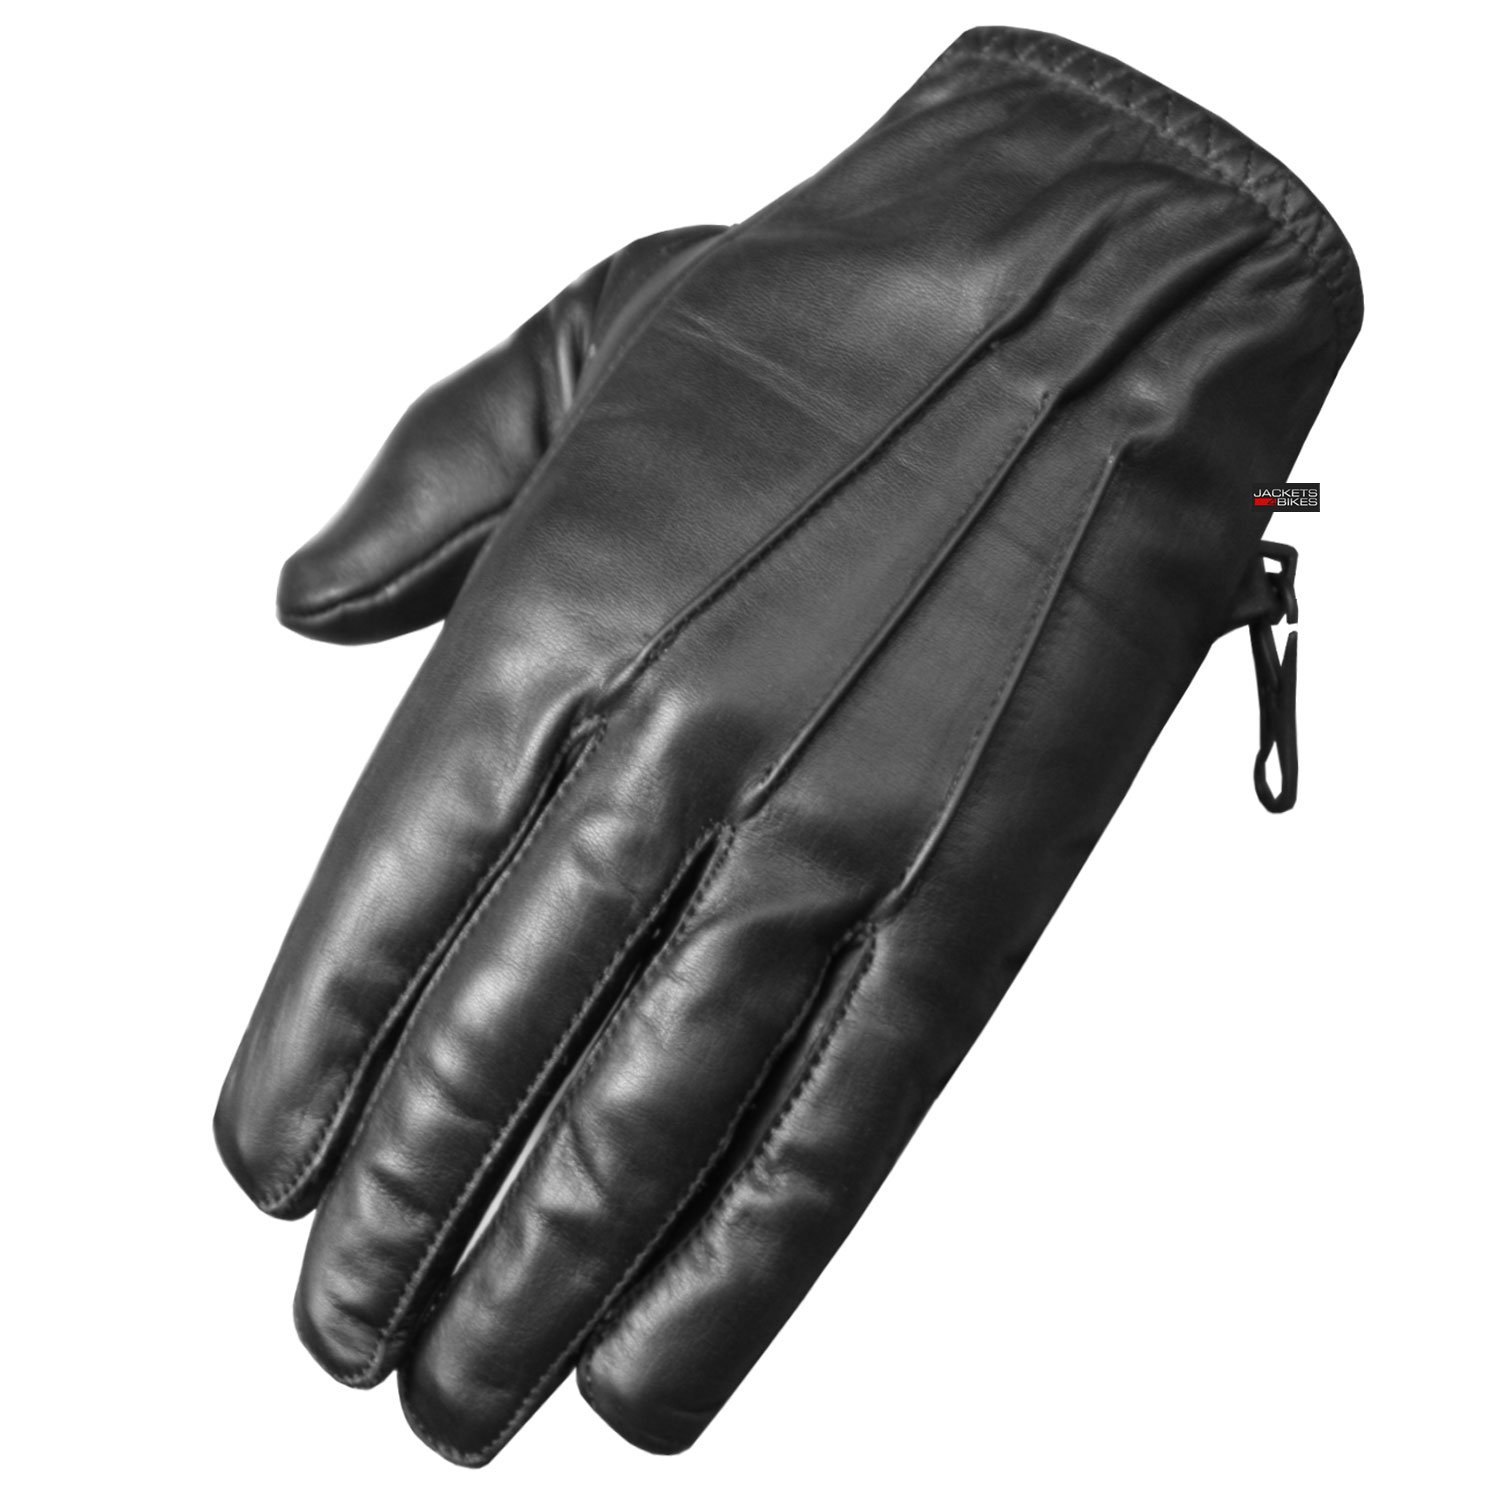 Premium Leather Police Driving Tactical Duty Thin Unlined Search Gloves Black M